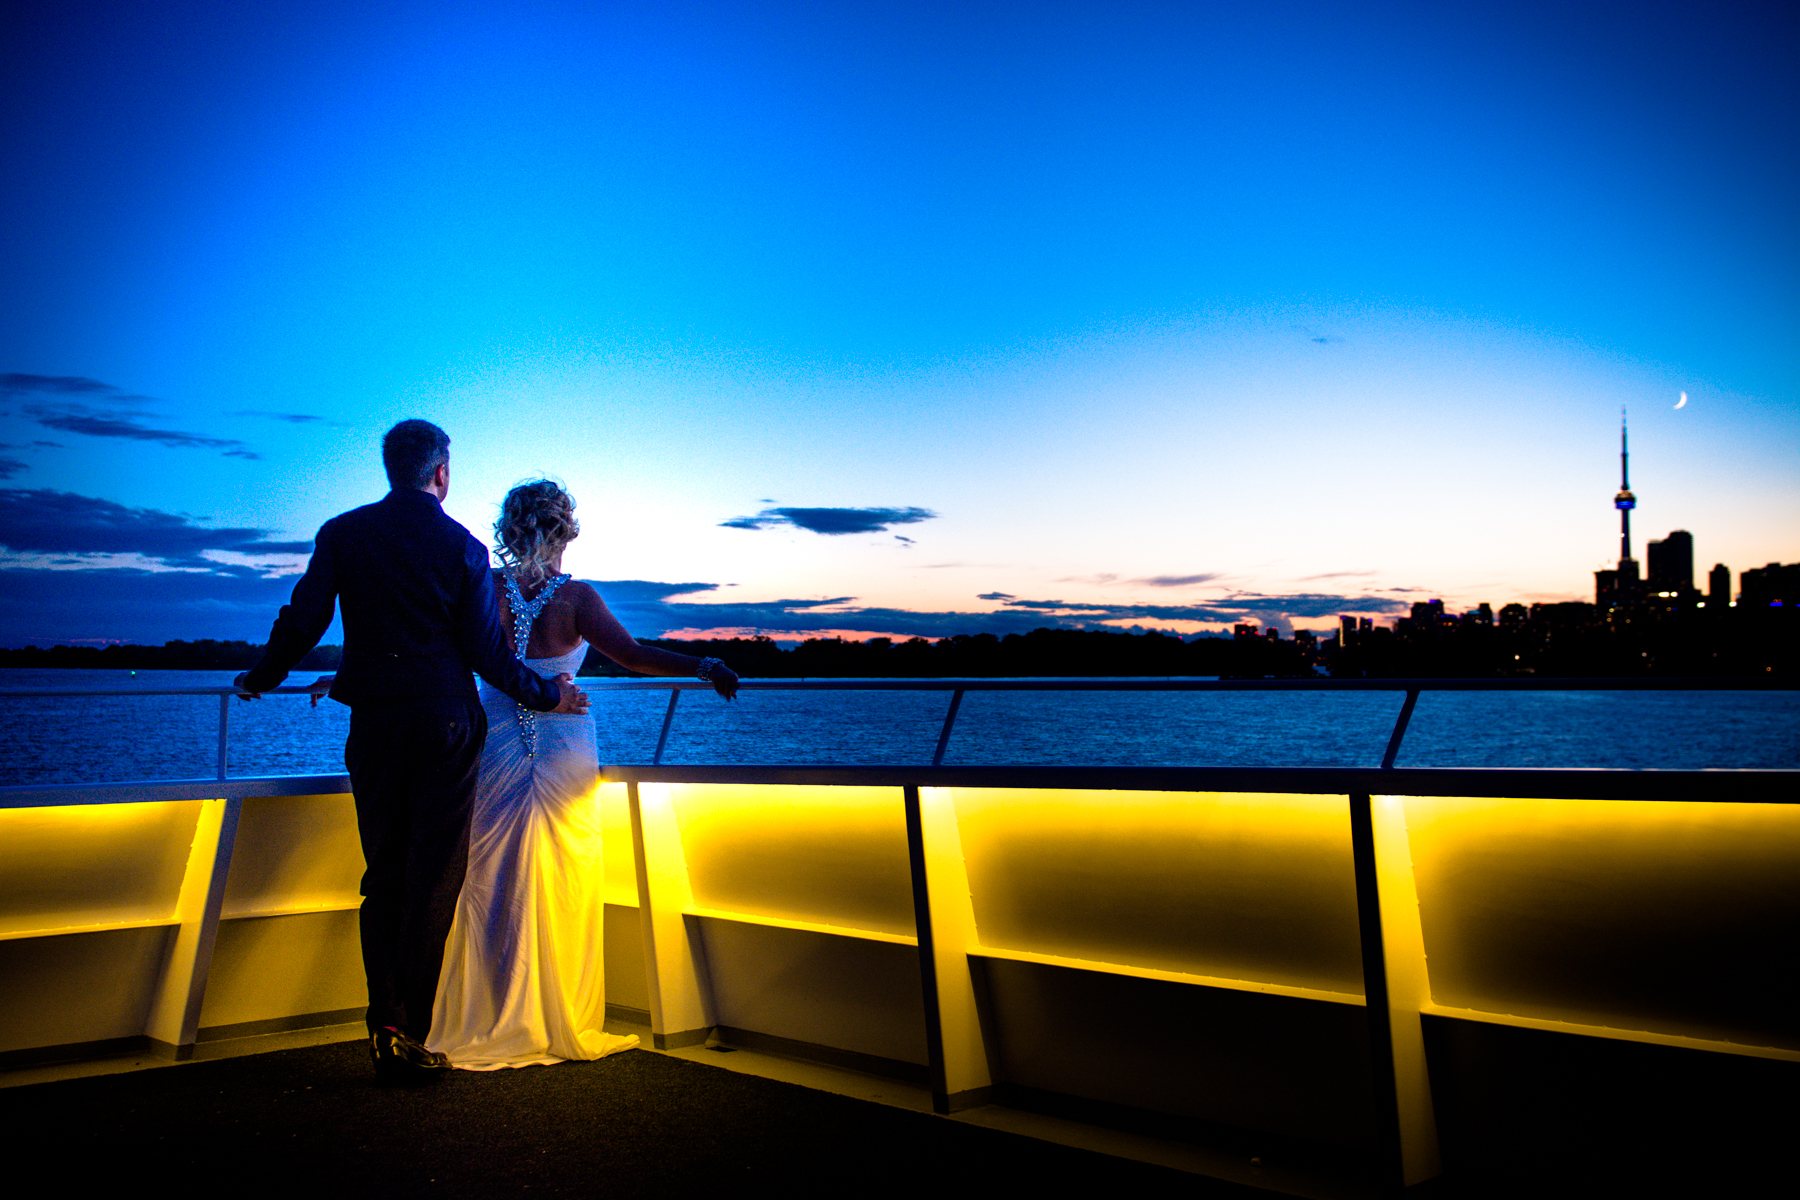 Married in the Toronto Harbour with a view of the Toronto CN Tower